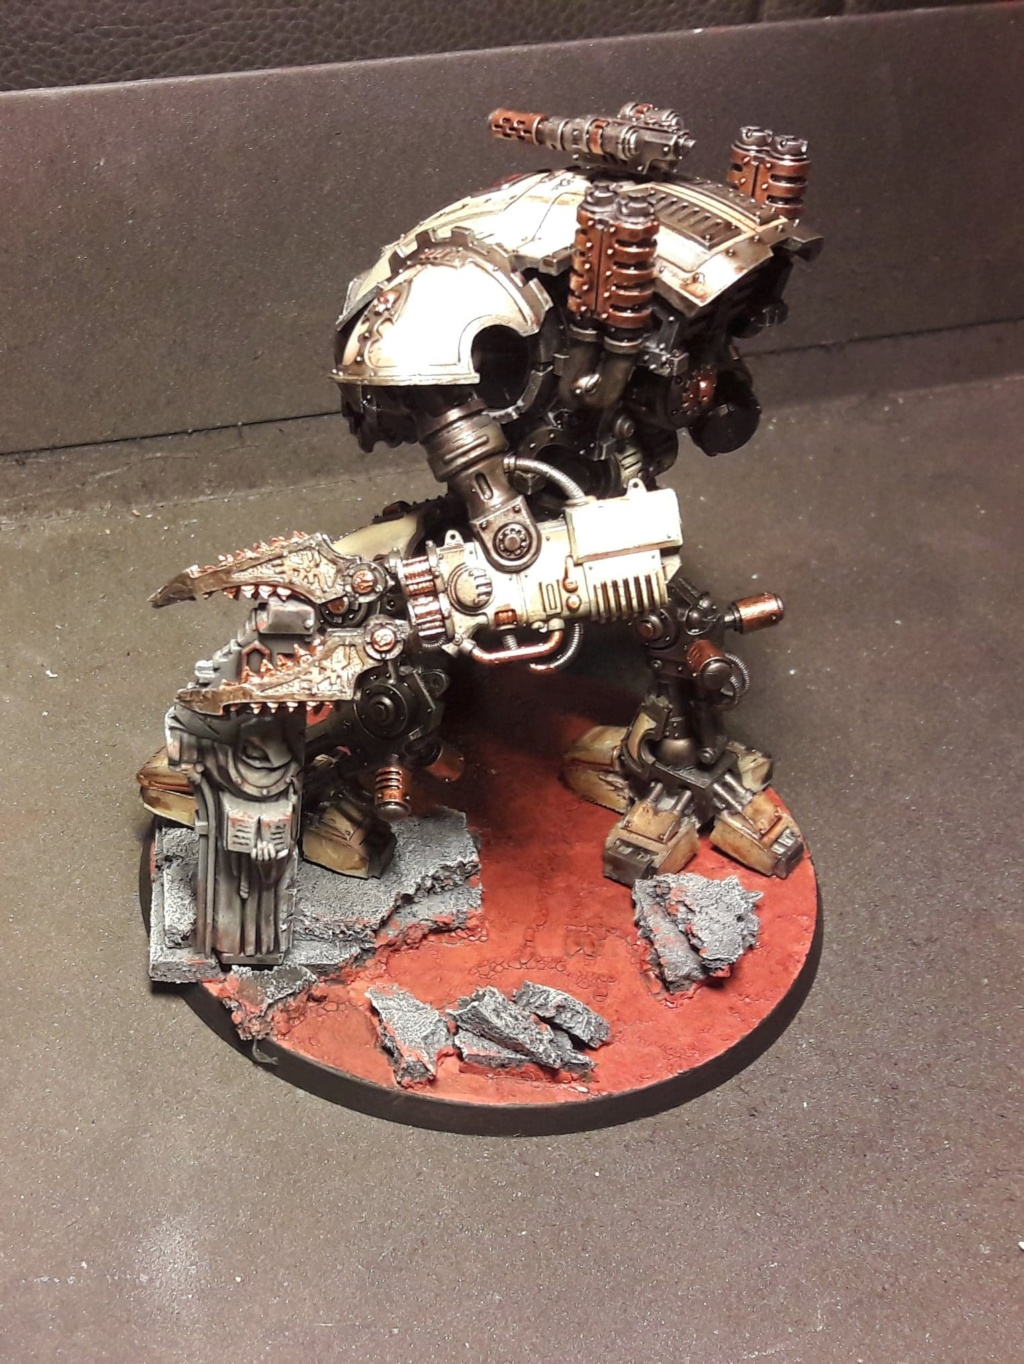 [FINI] (Wedge / Freelancer mechanicus)  duo Armiger warglaive   354 pts 50973510